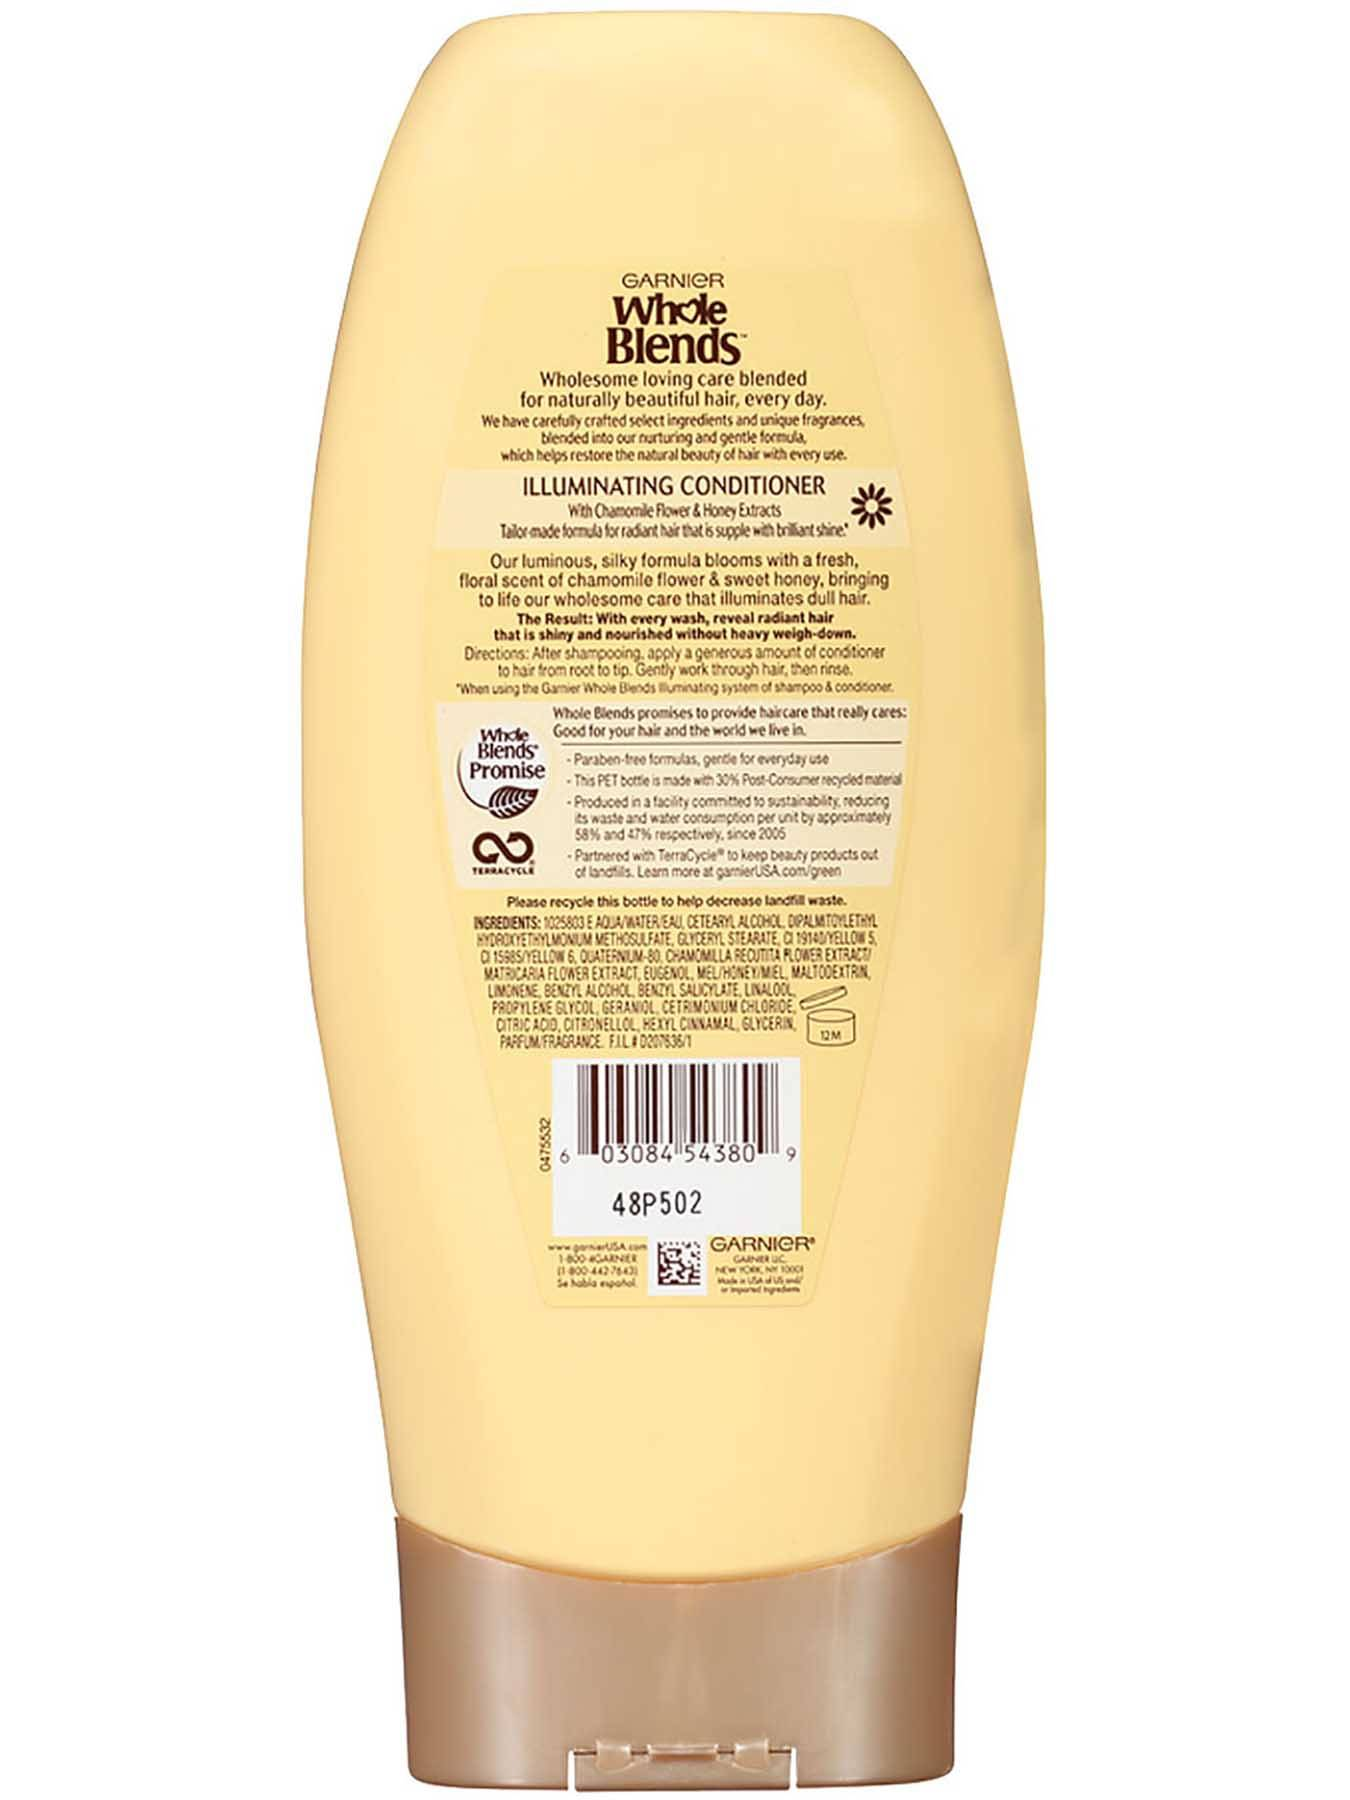 Back view of Illuminating Conditioner with Chamomile Flower and Honey Extracts, Silicone-Free.